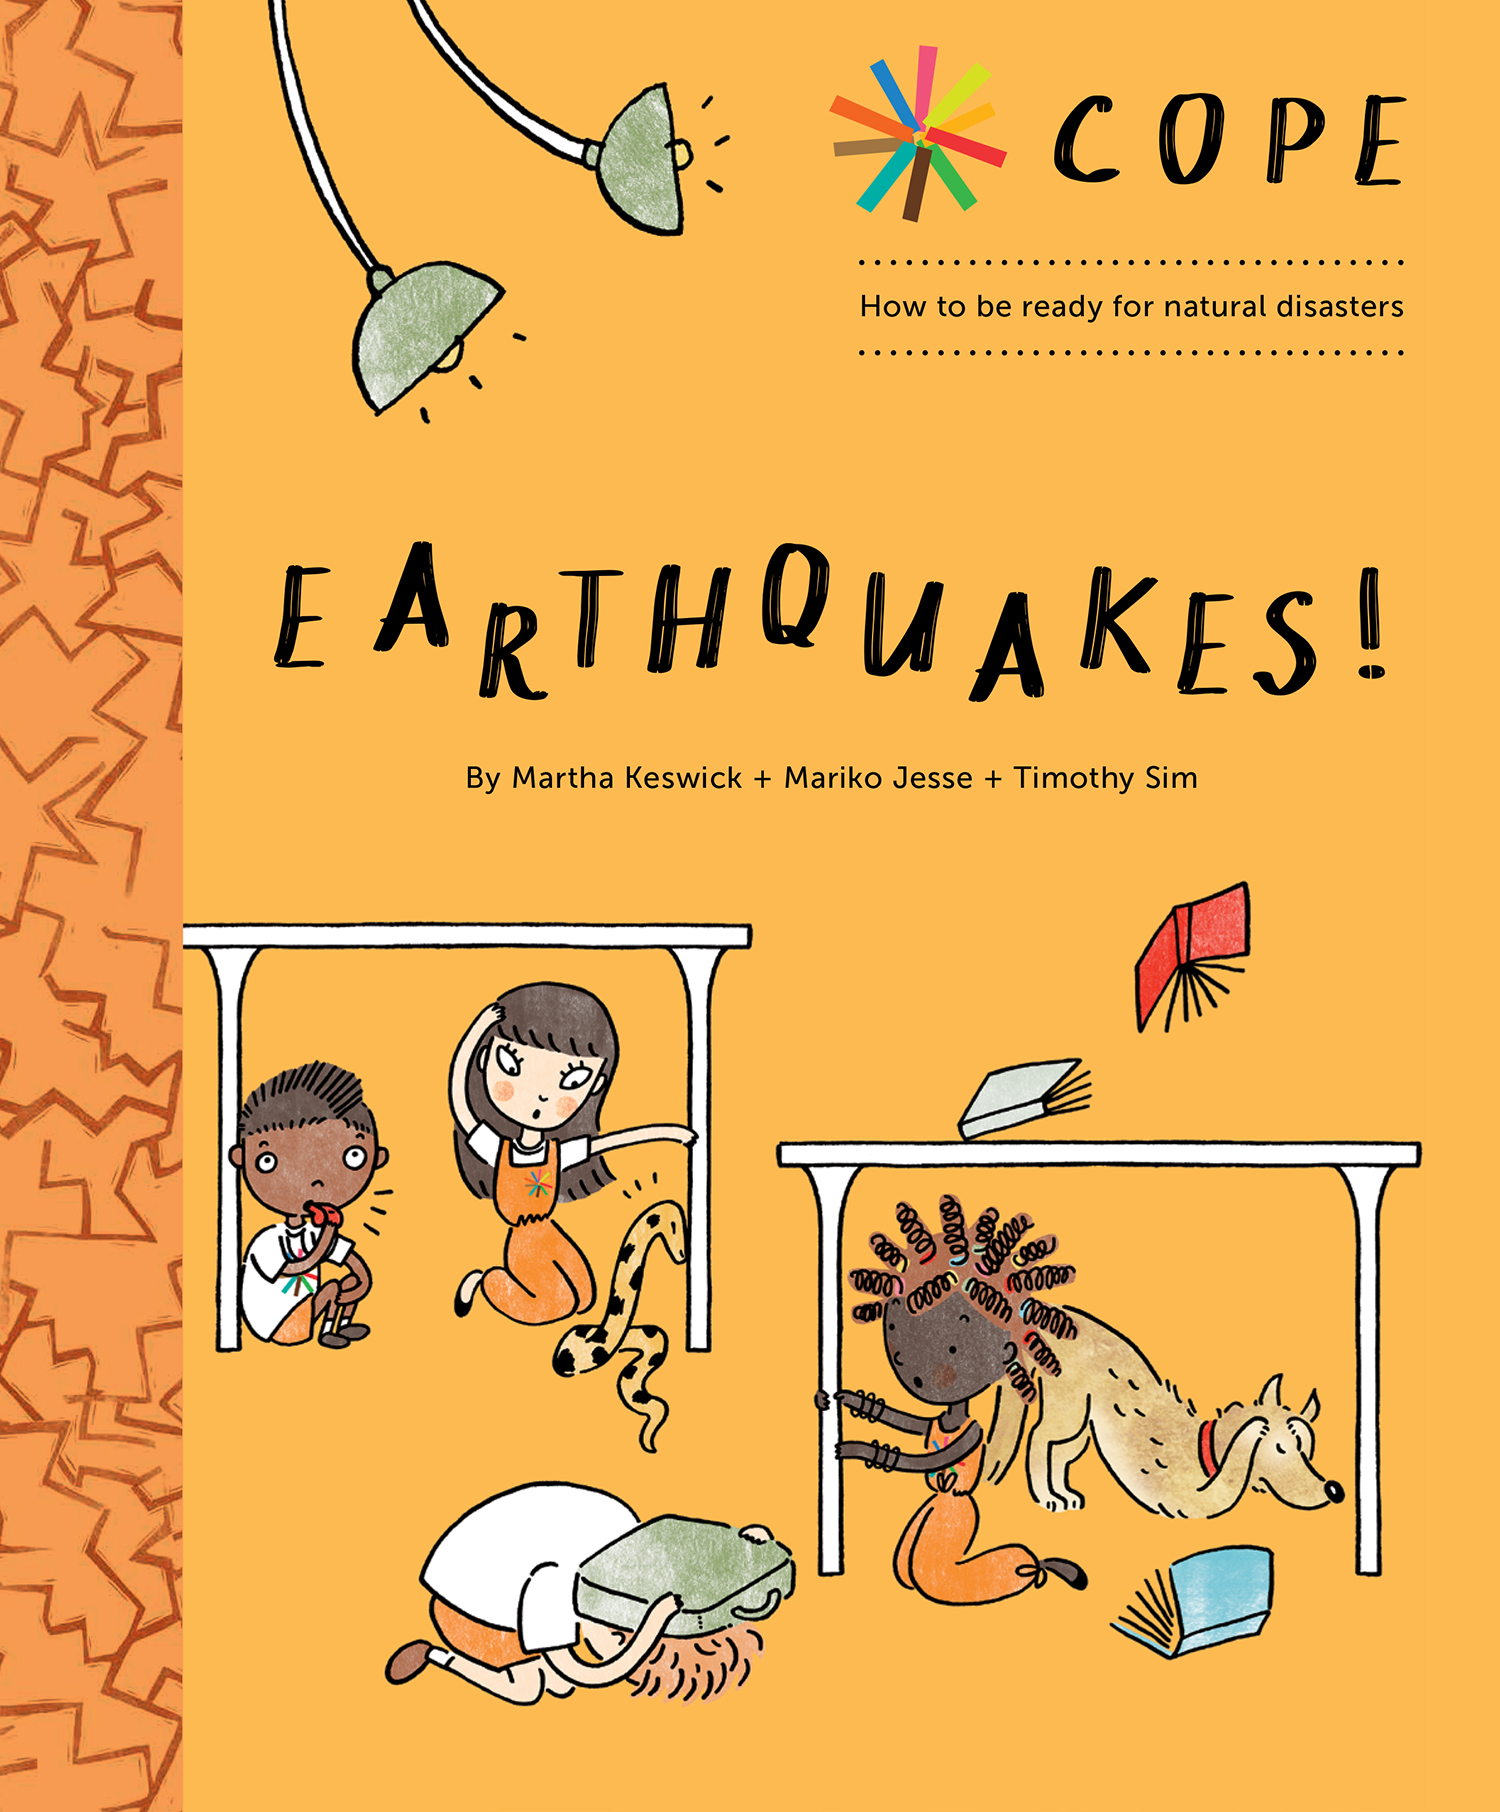 COPE Earthquake book